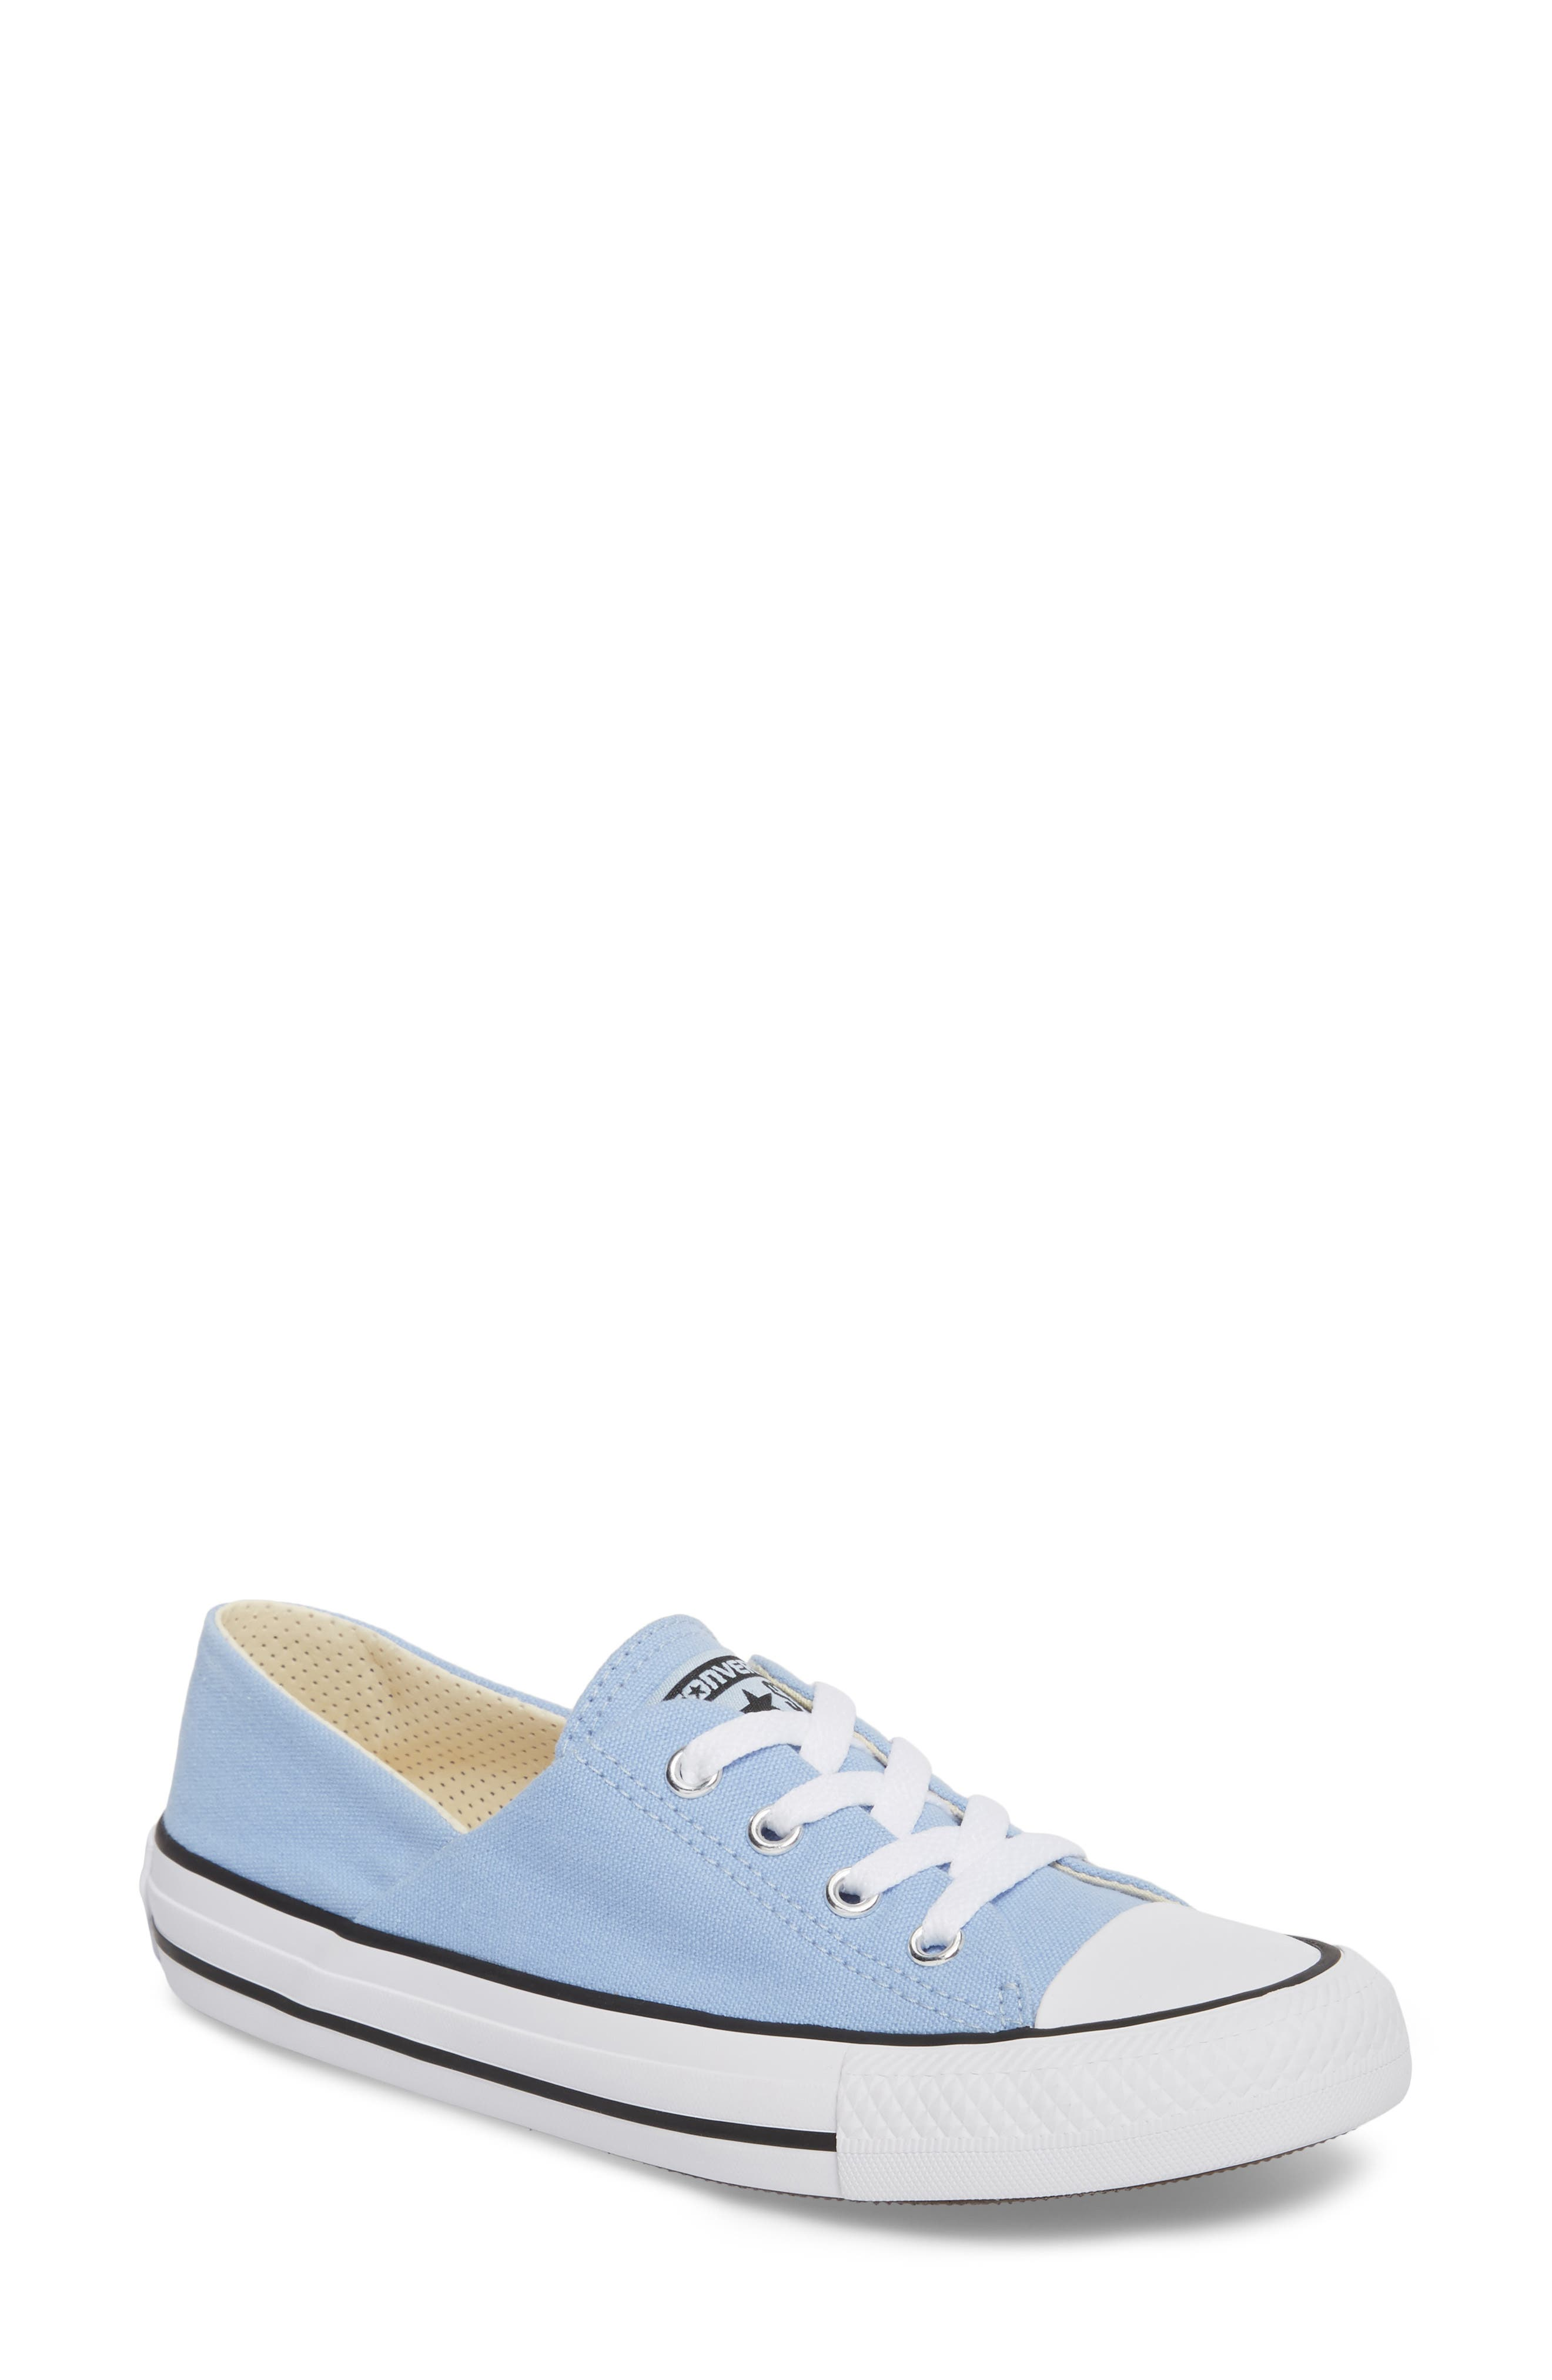 Chuck Taylor<sup>®</sup> All Star<sup>®</sup> Coral Ox Low Top Sneaker,                         Main,                         color, 457